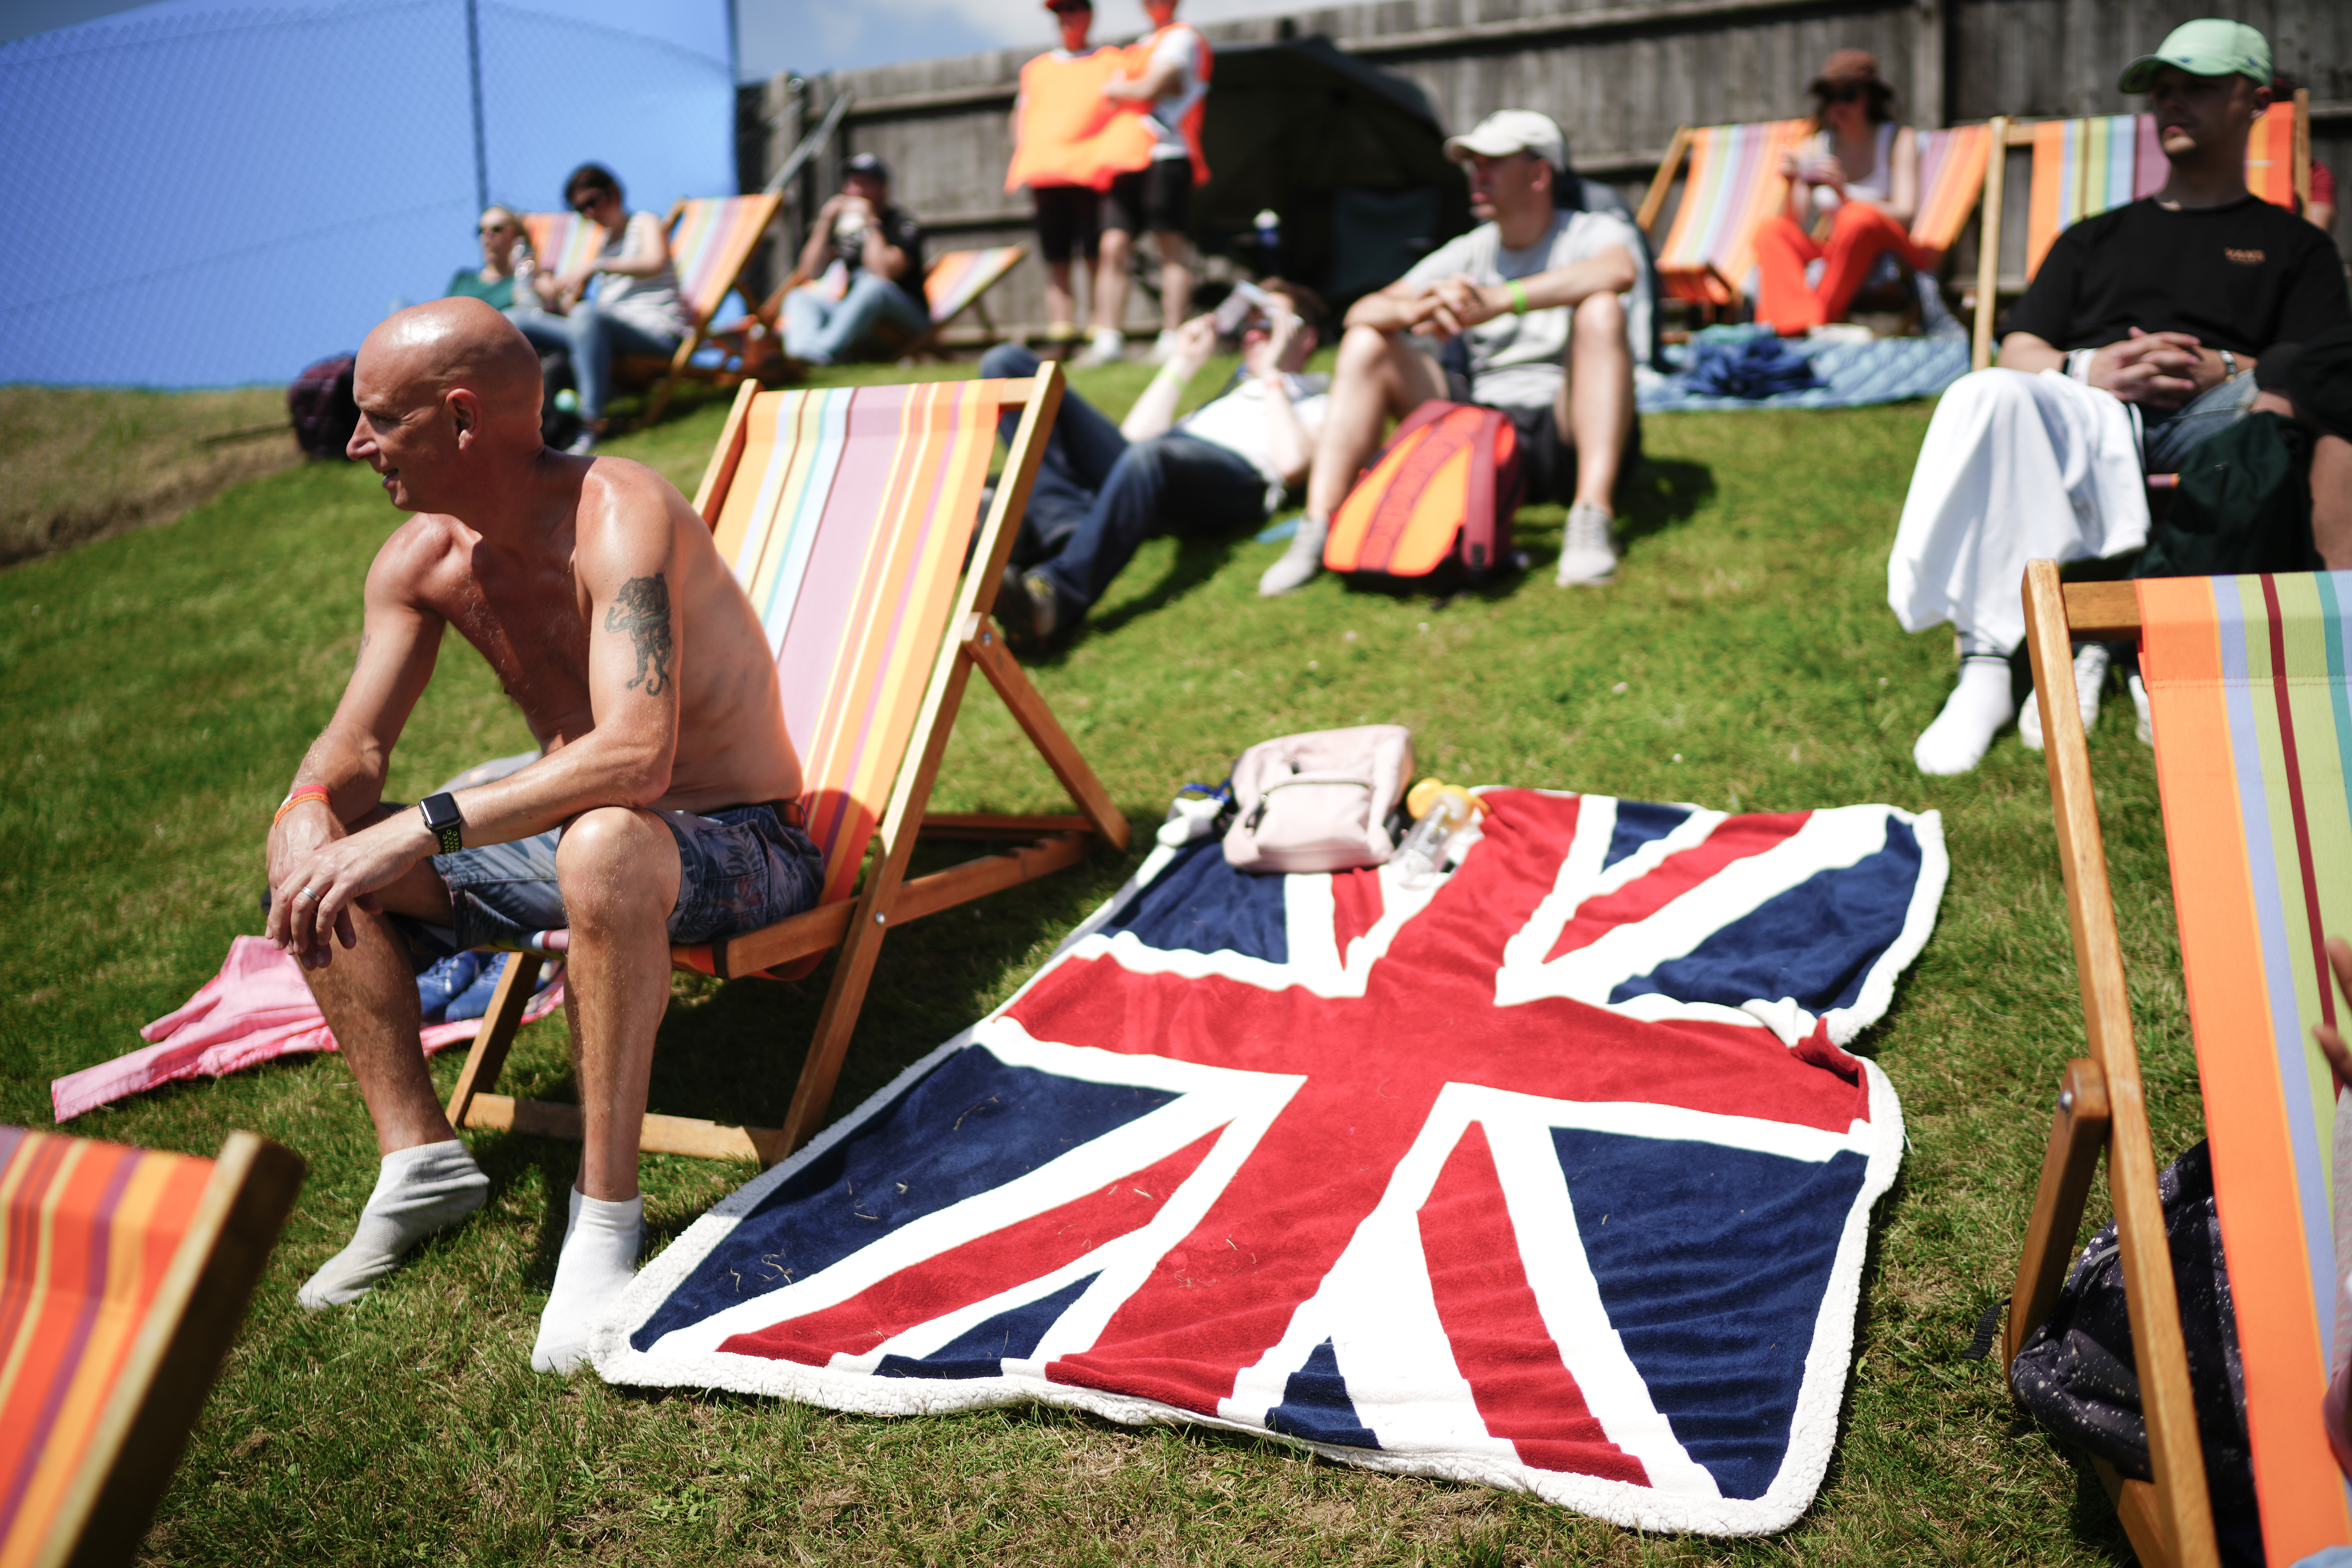 <p>NORTHAMPTON, ENGLAND - JULY 16: Motor racing fans soak up the atmosphere ahead of the  F1 Grand Prix of Great Britain at Silverstone Circuit on July 16, 2021 in Northampton, England. More than 140,000 are expected at this weekend's event, one of the largest sporting crowds since the start of the Covid-19 pandemic, which kept fans away from last year's Grand Prix. Ticket-holders aged 11 and up are required to show a negative lateral flow test or proof of full vaccination to attend the race. (Photo by Christopher Furlong/Getty Images)</p>